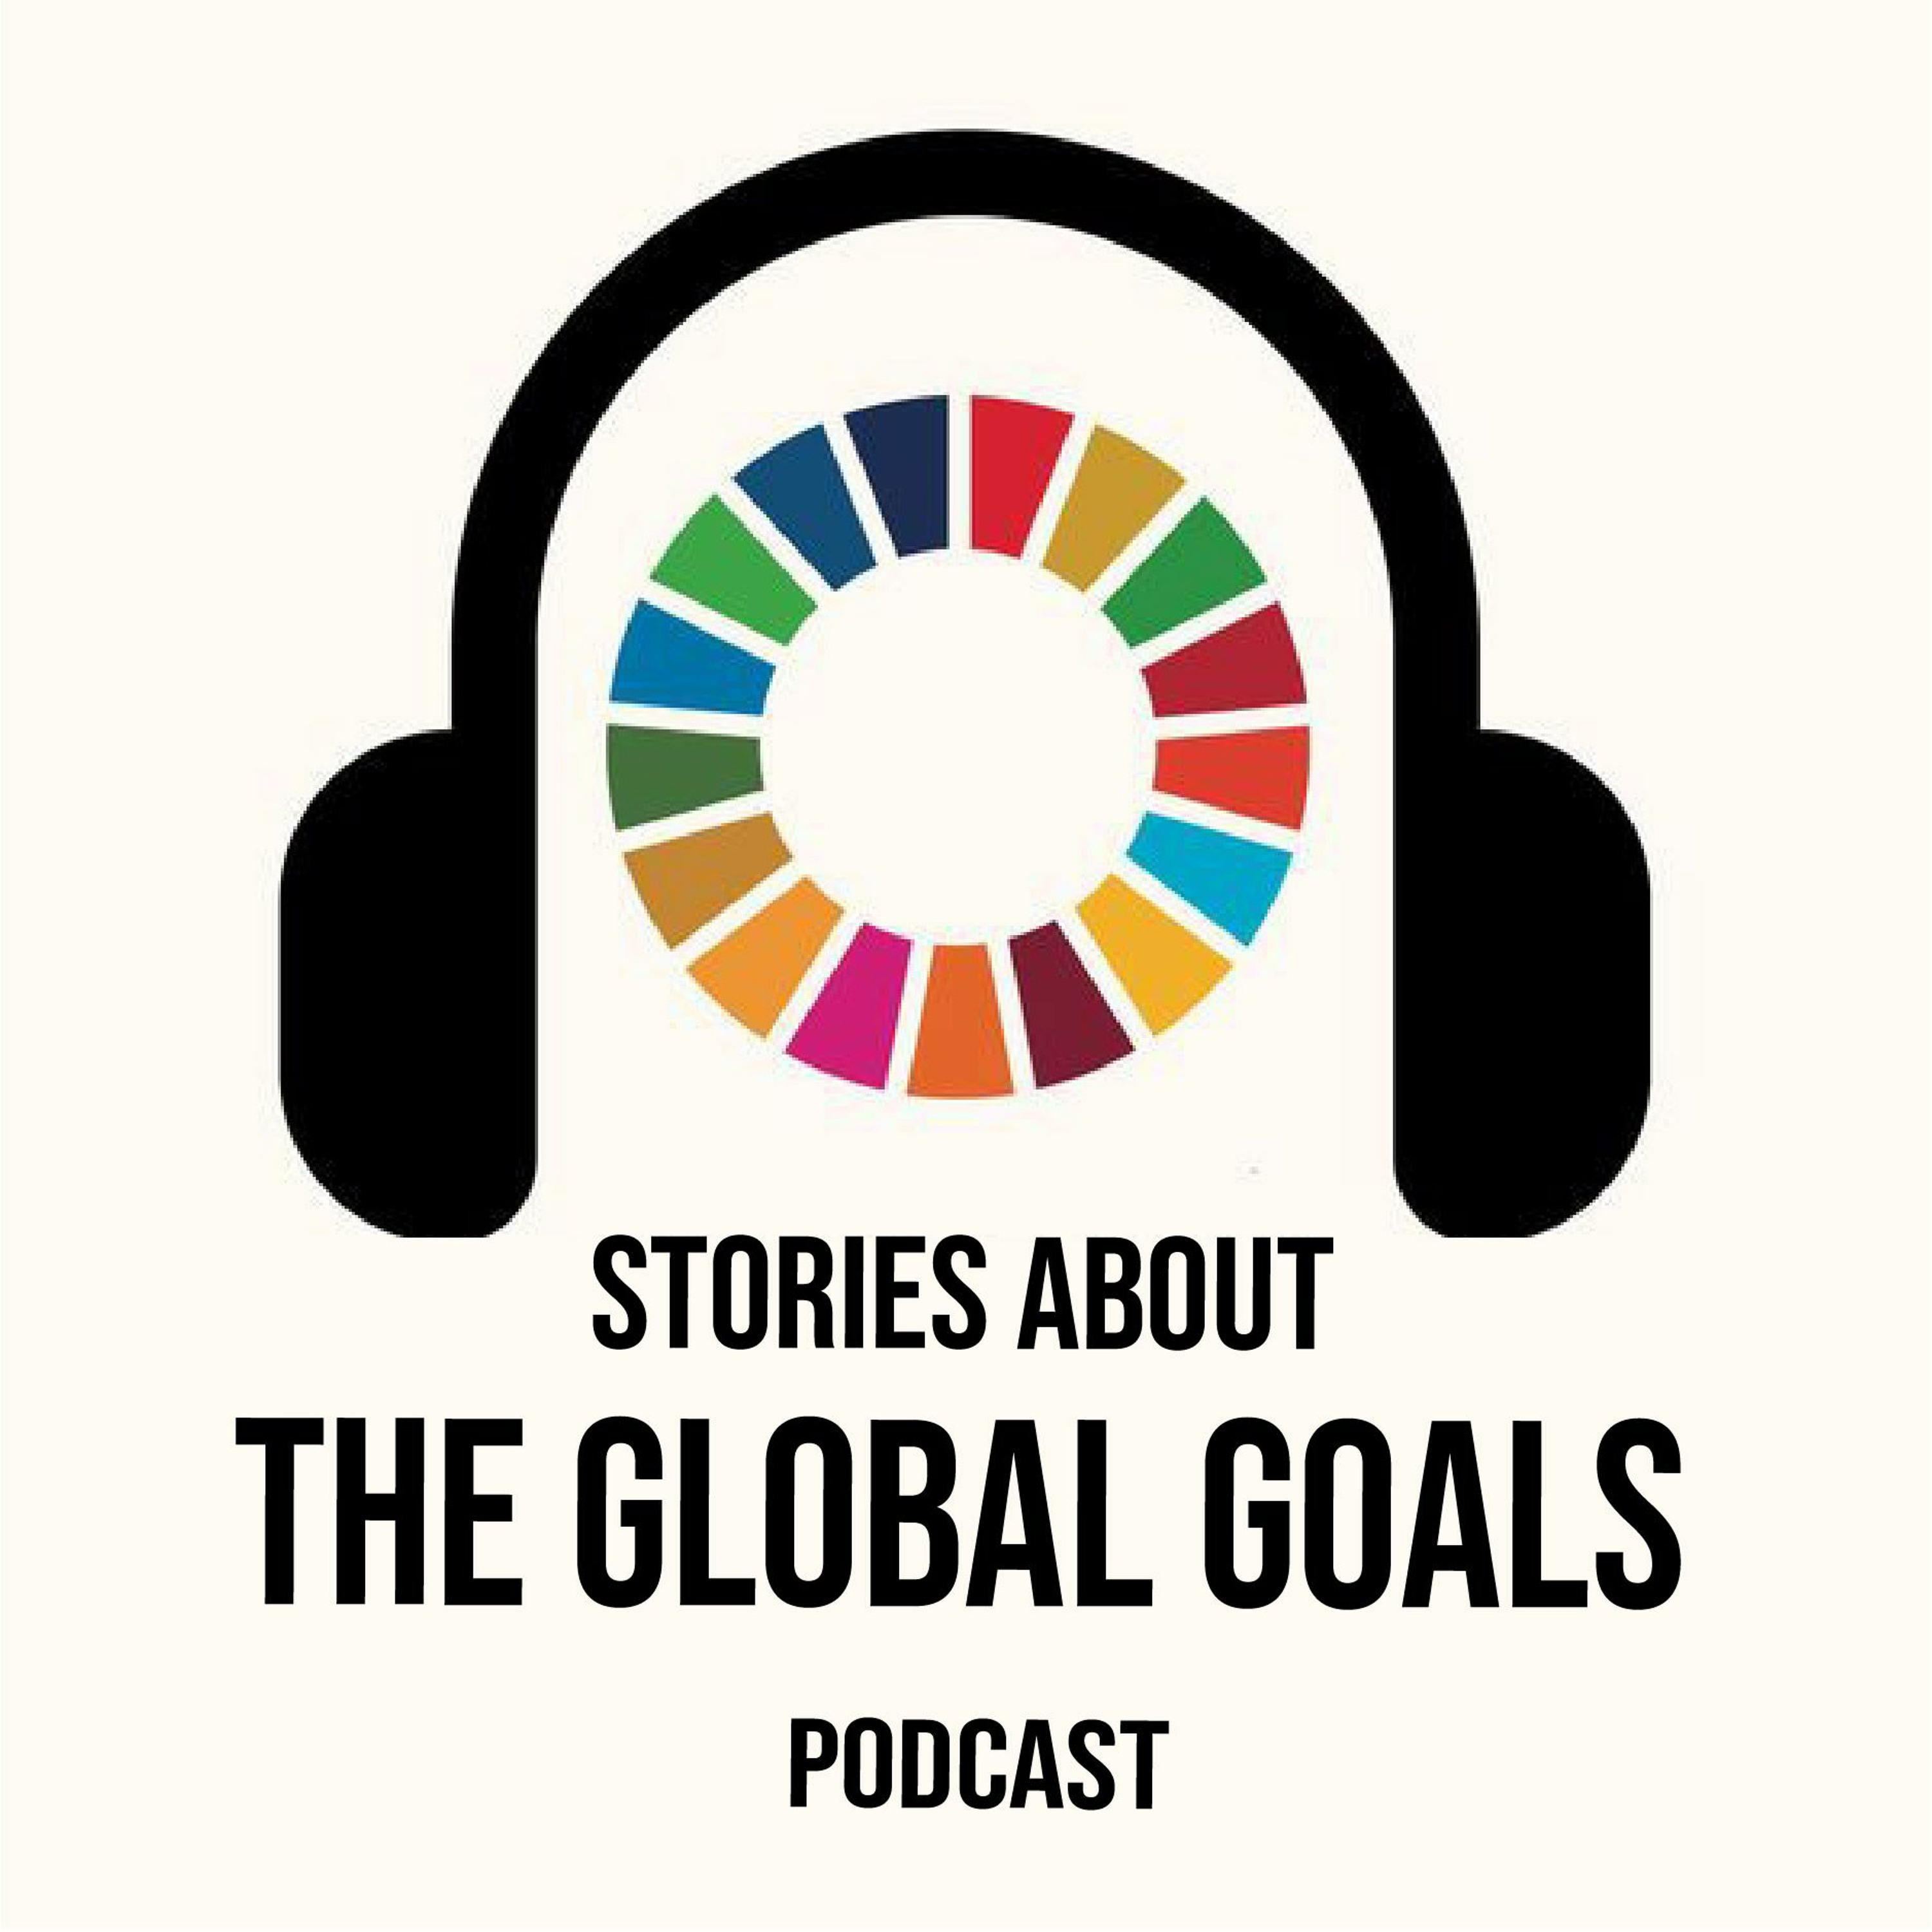 HUMAN RIGHTS - Stories about the Global Goals - with Craig Mokhiber